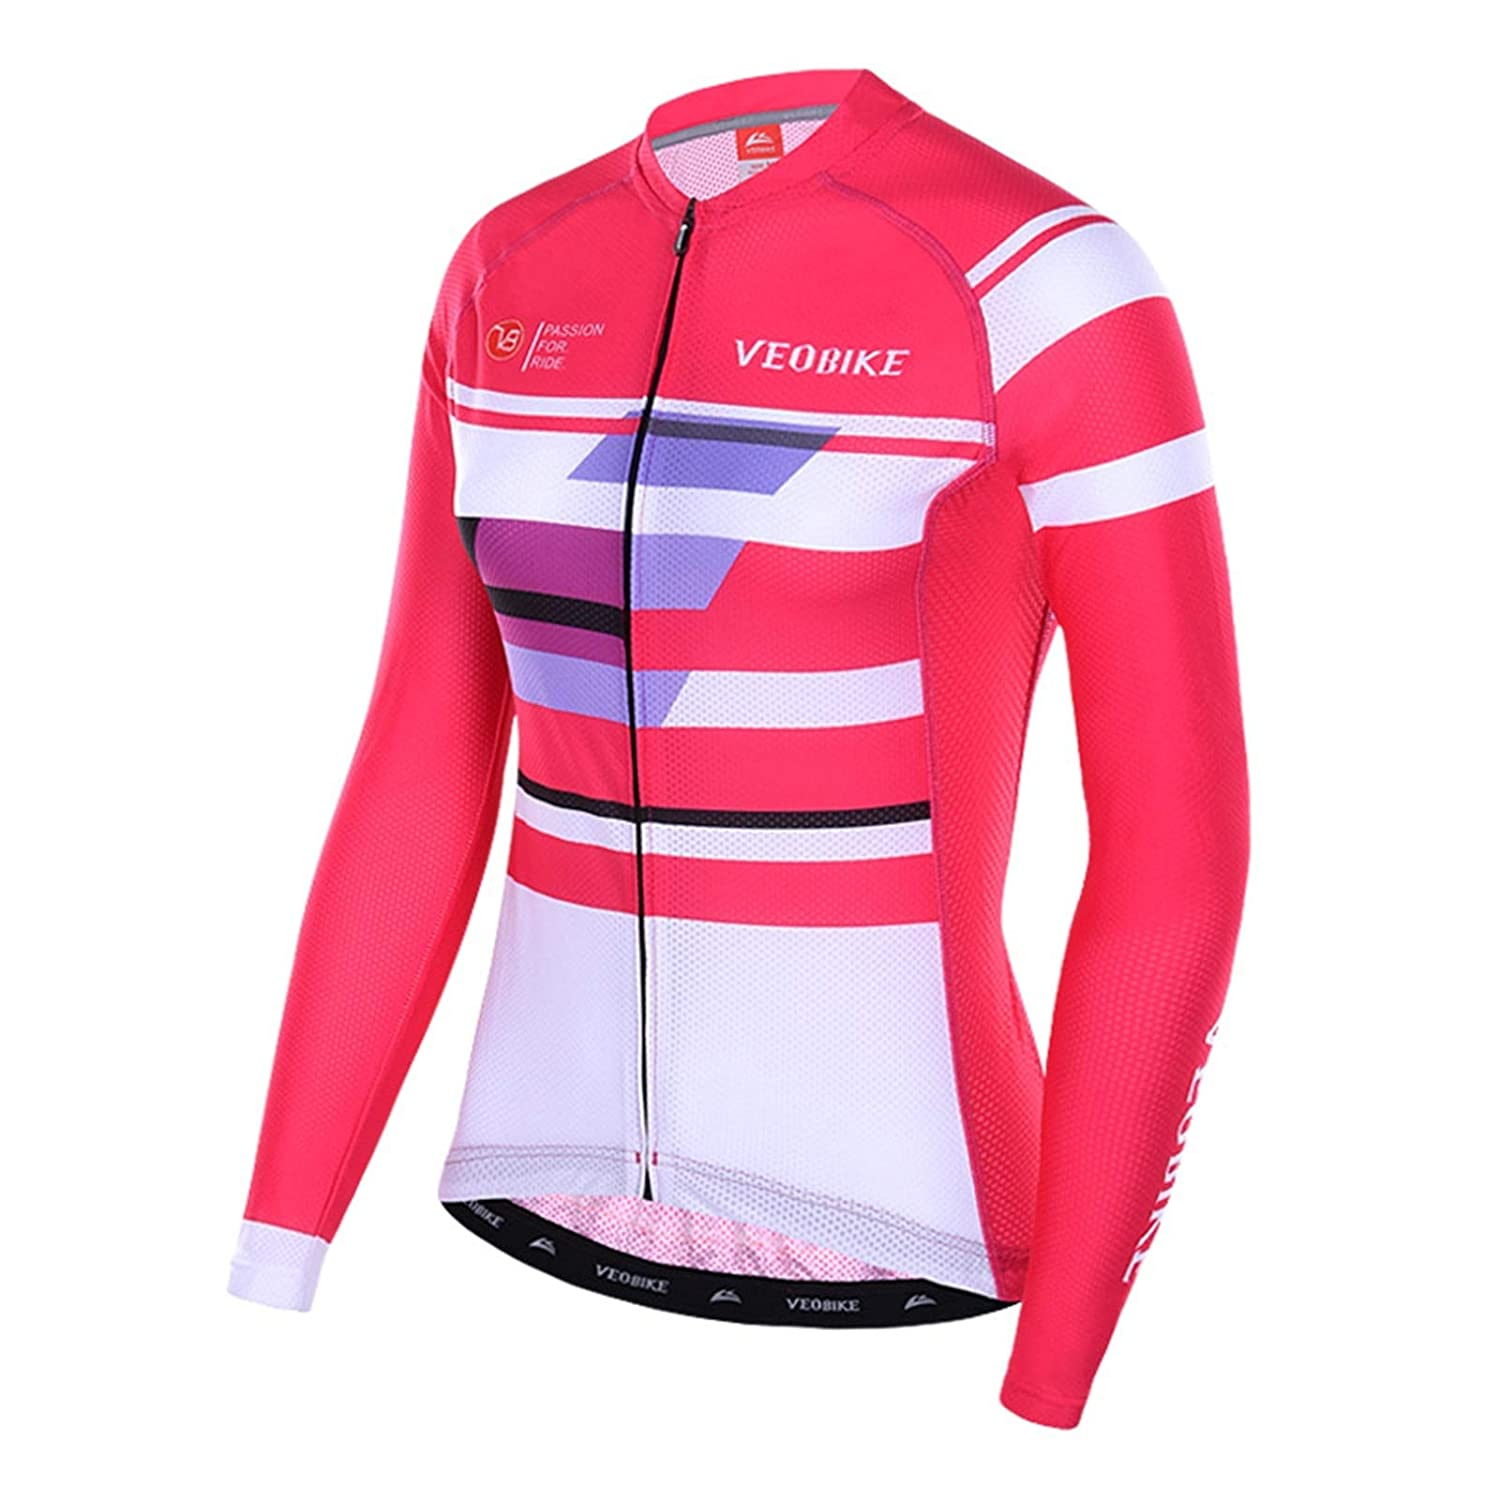 Pink Clothes L Epinki Women Spring Autumn Summer Breathable Cycling Jersey for Outdoor and Multi Sports Cycling Clothing Sets